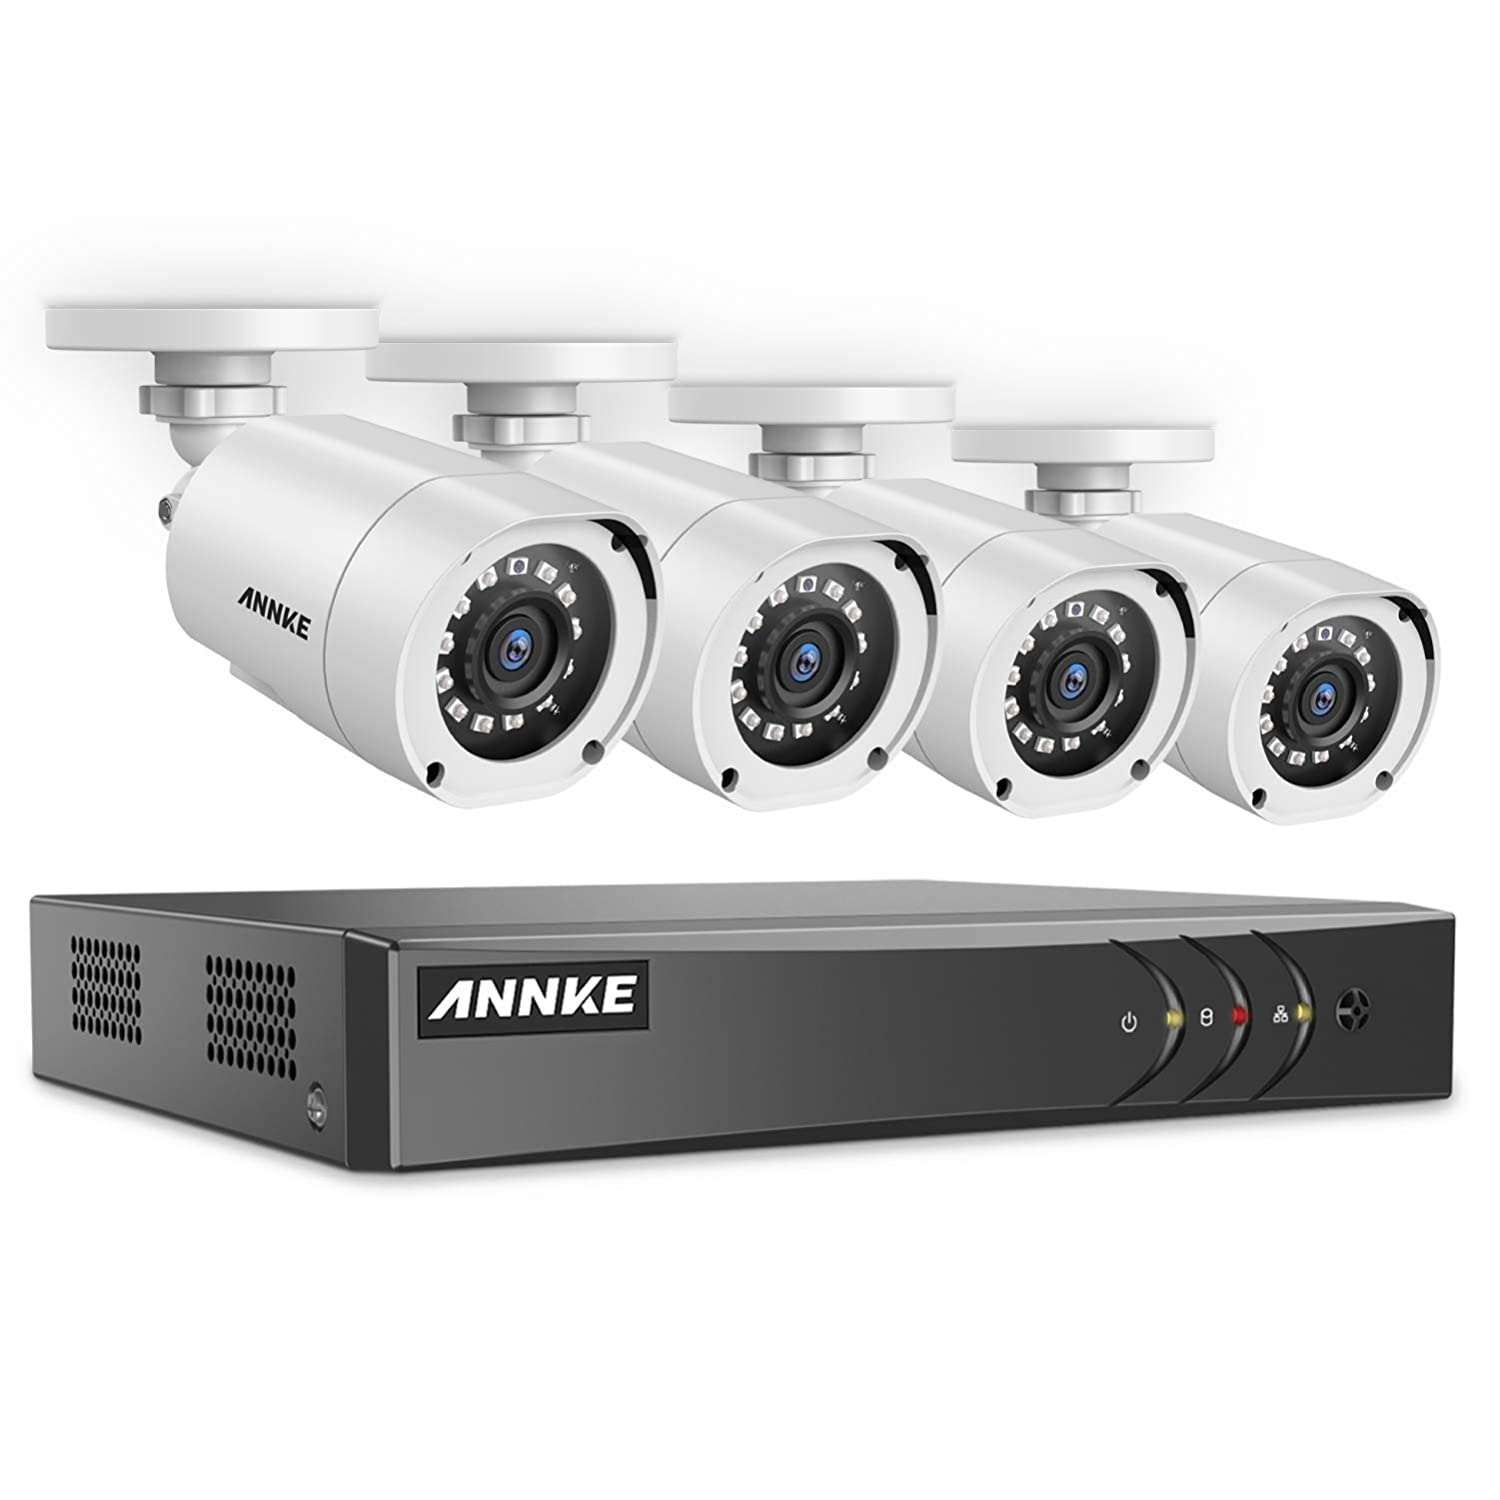 ANNKE Security Camera Systems 4CH 1080P Lite H.264 DVR and 4 1080P Outdoor CCTV Camera System, Super Night Vision, Email Alert with Snapshots, NO HDD